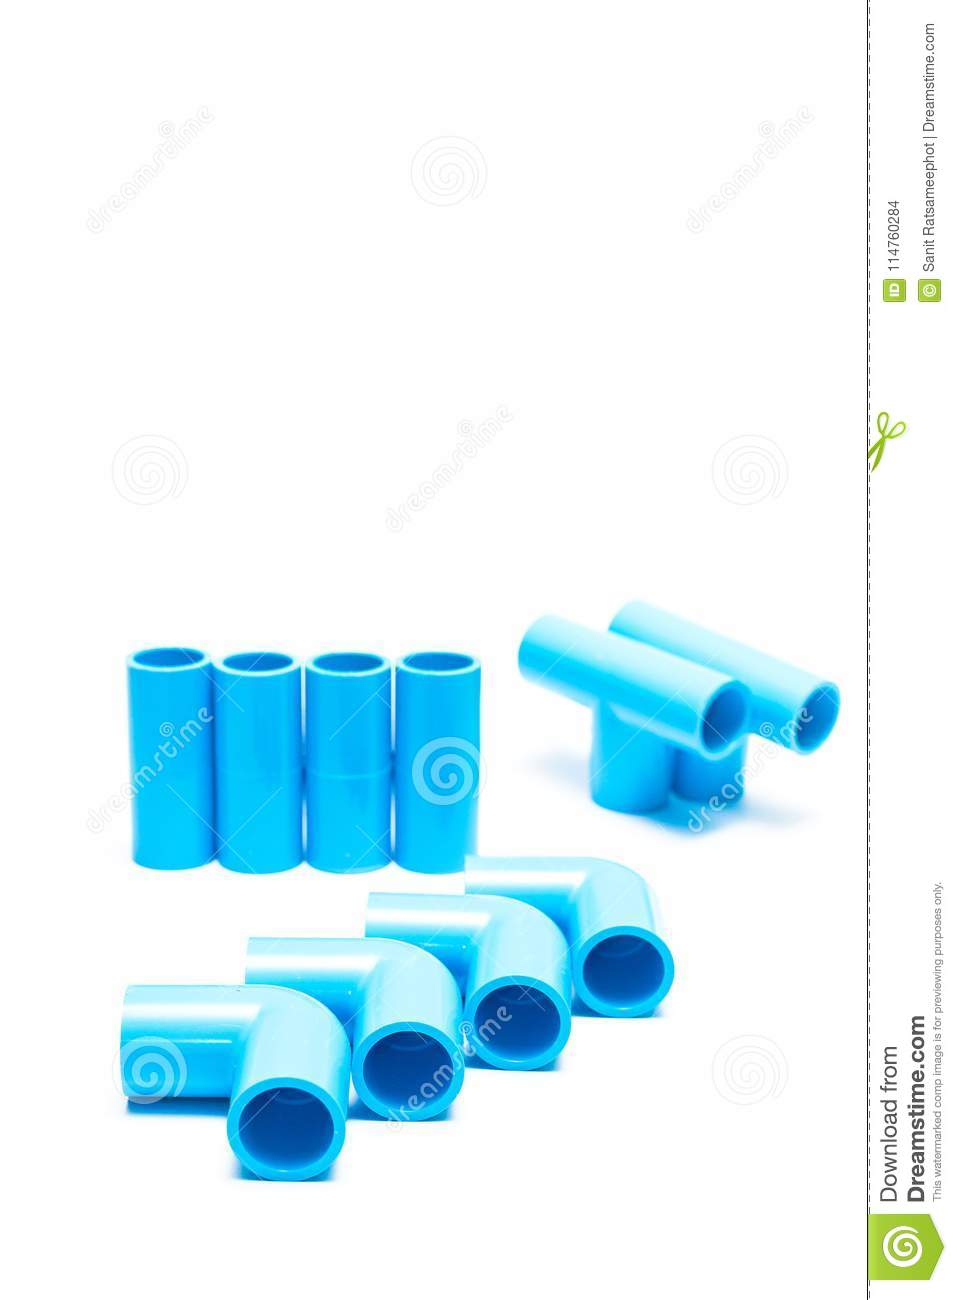 Pvc Joints Blue Pvc Pipe Fittings Stock Photo Image Of Joint 114760284